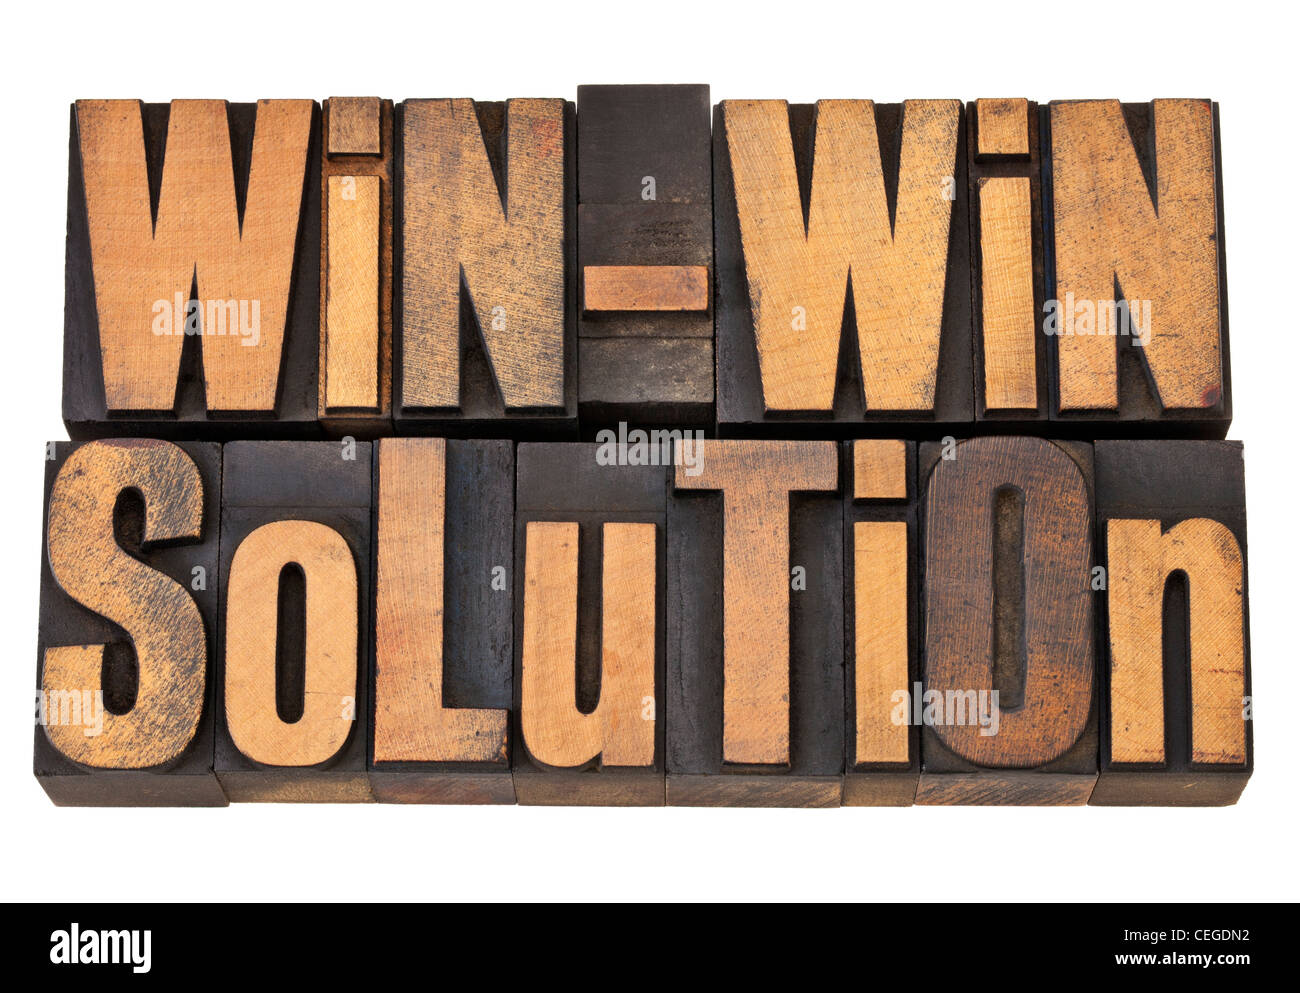 win-win solution - negotiation or conflict resolution concept - isolated words in vintage wood type - Stock Image